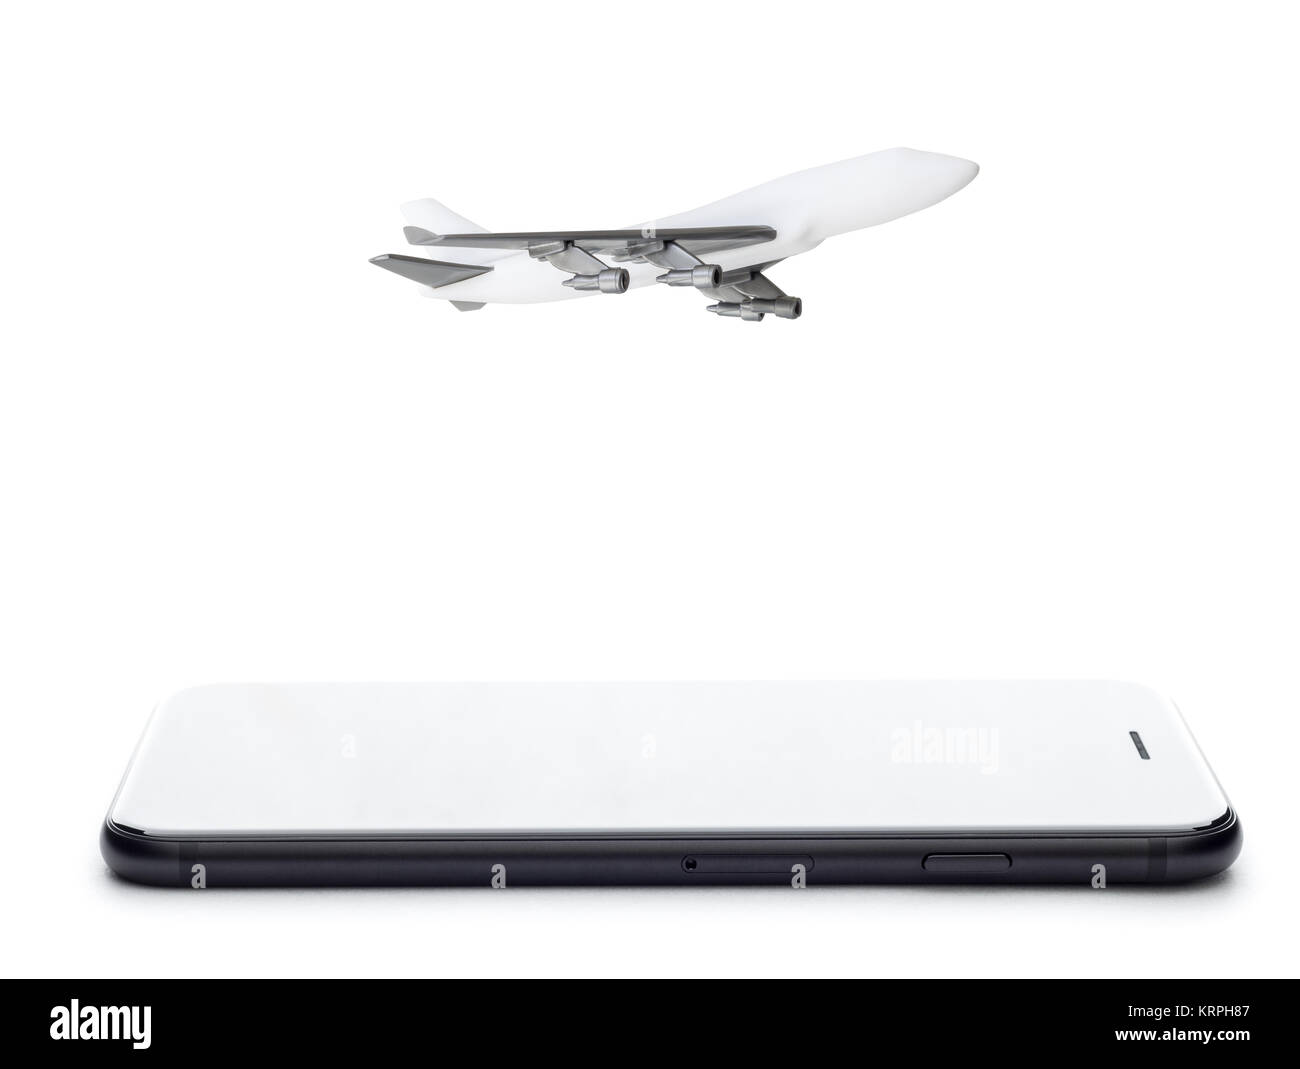 phone and airplane model on white background - Stock Image